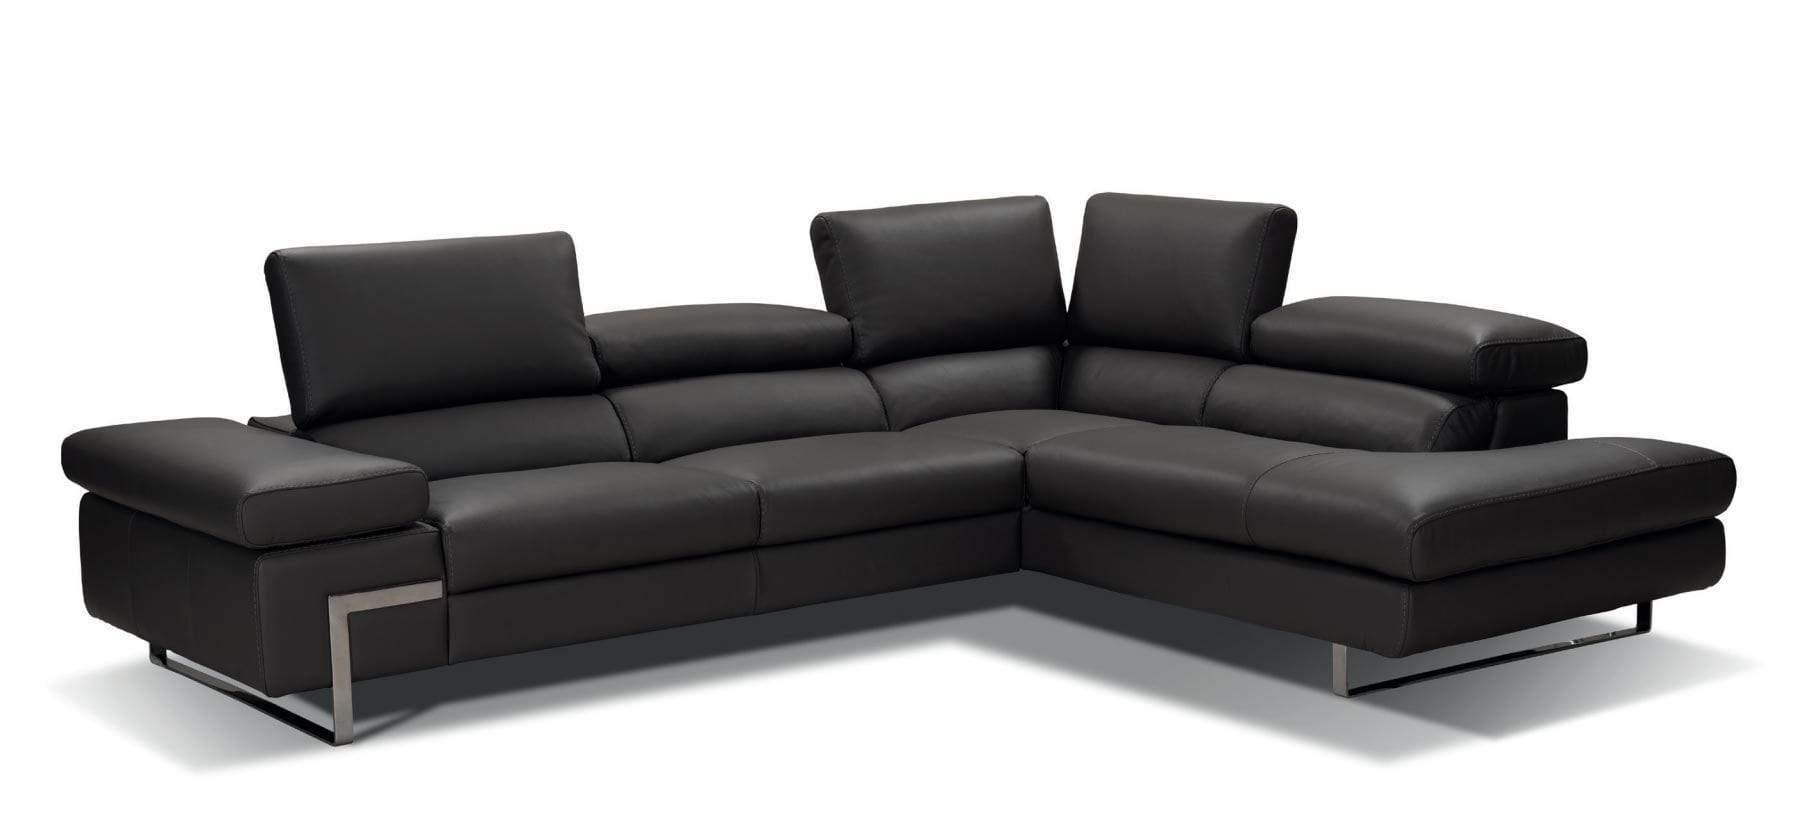 PB-24-I716 Leather Sectional-Palma-Brava